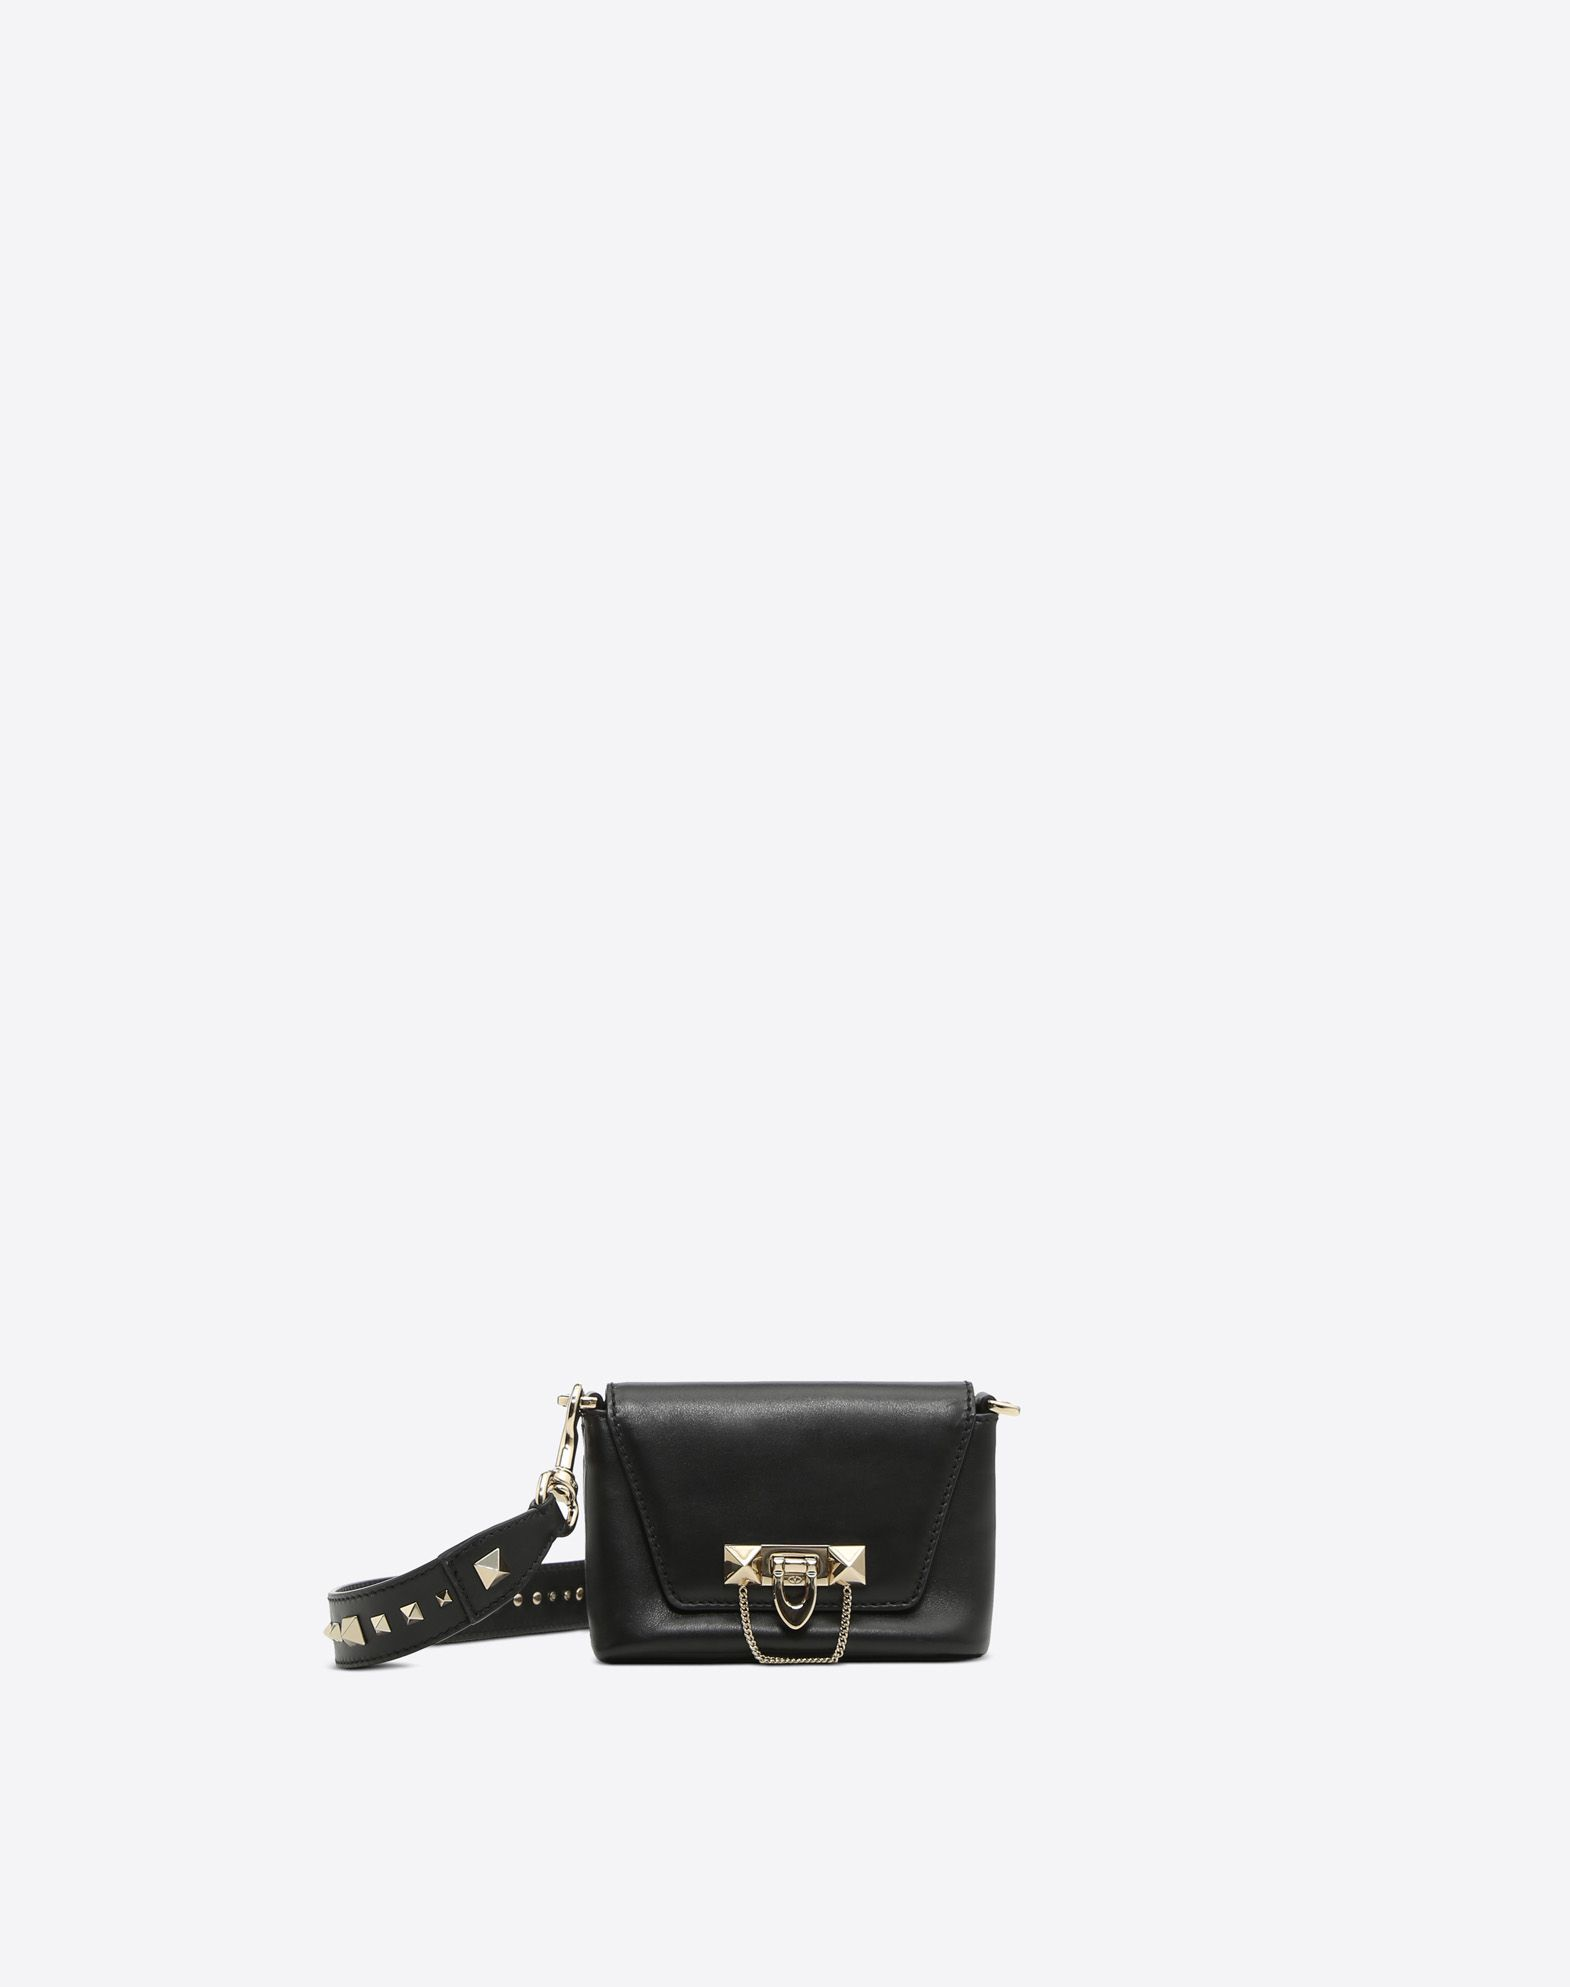 VALENTINO Studs Logo Solid color Framed closure Internal pocket Removable shoulder strap  45386529jm